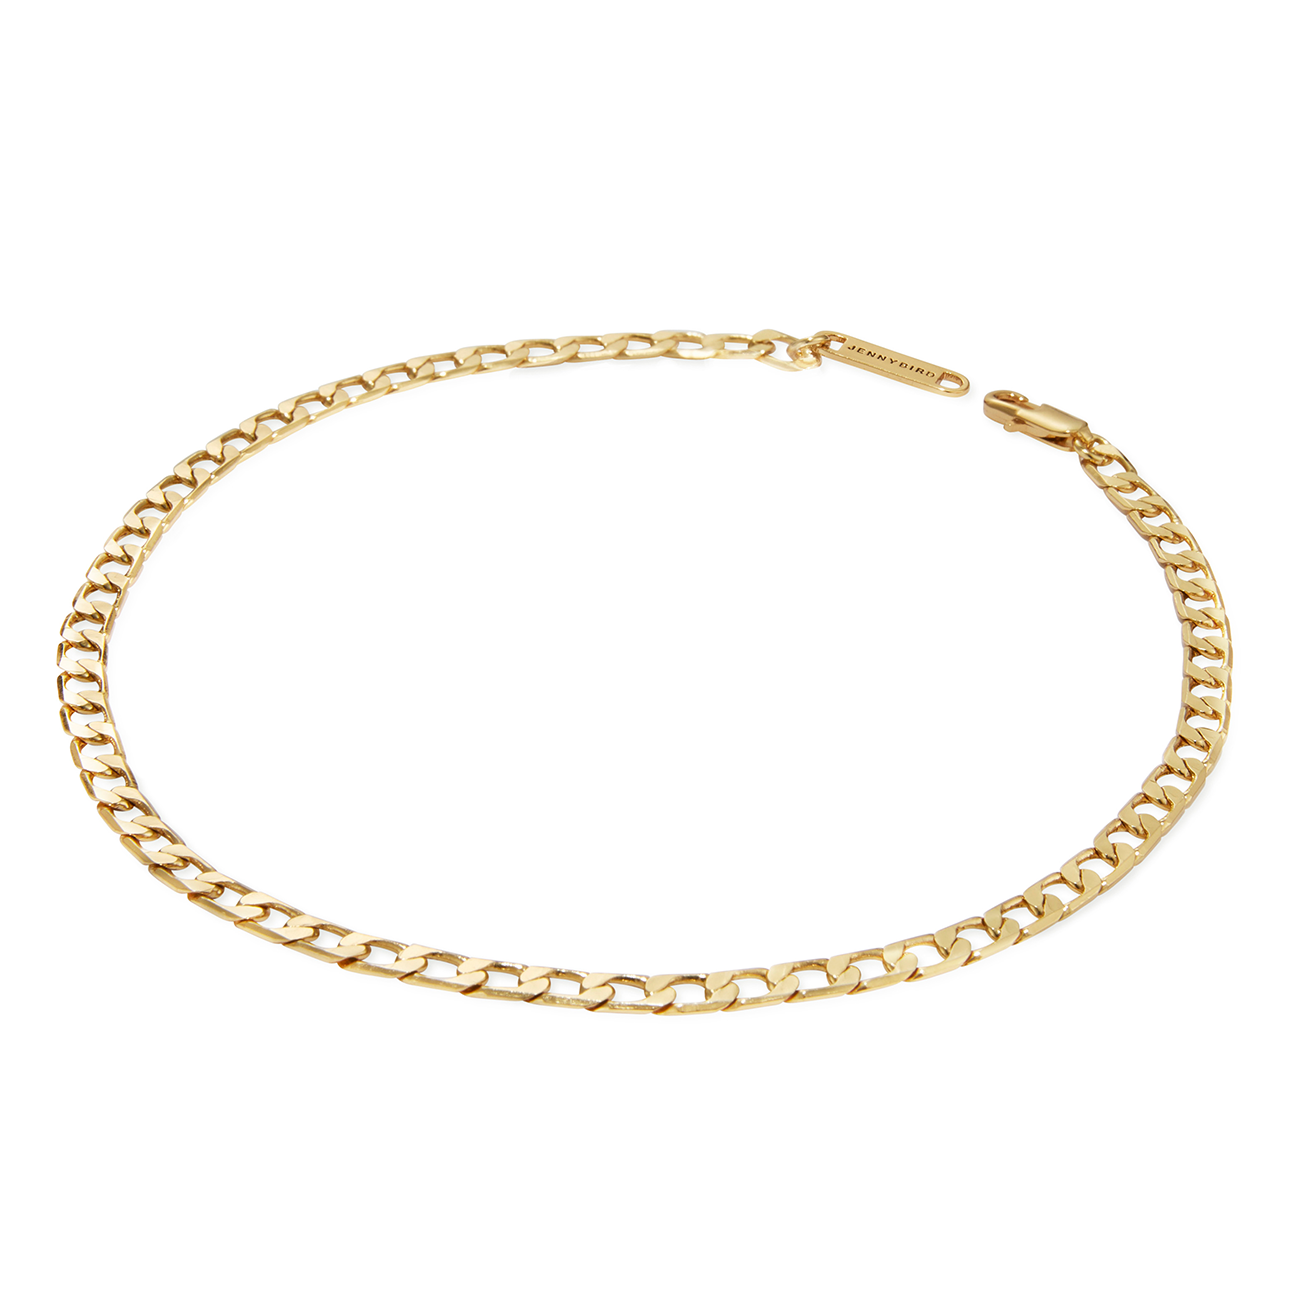 Gold small chain link Walter Choker necklace by JENNY BIRD